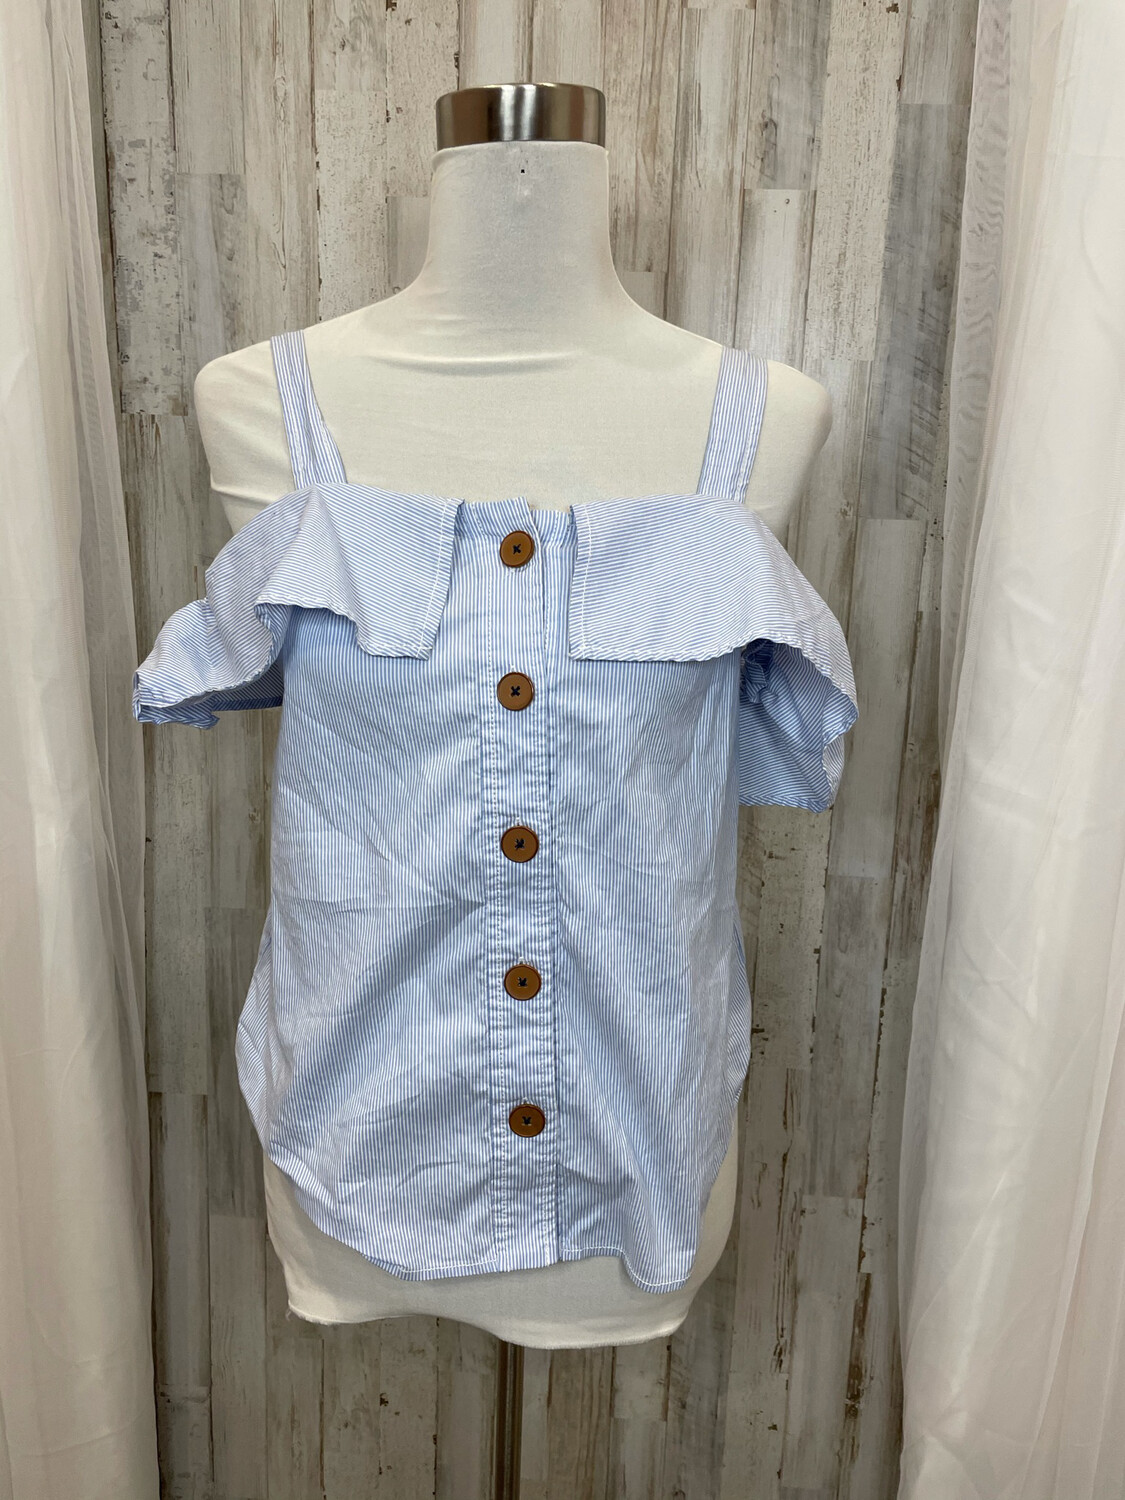 Maeve Blue & White Striped Button Down Off Shoulder Top - Size 4